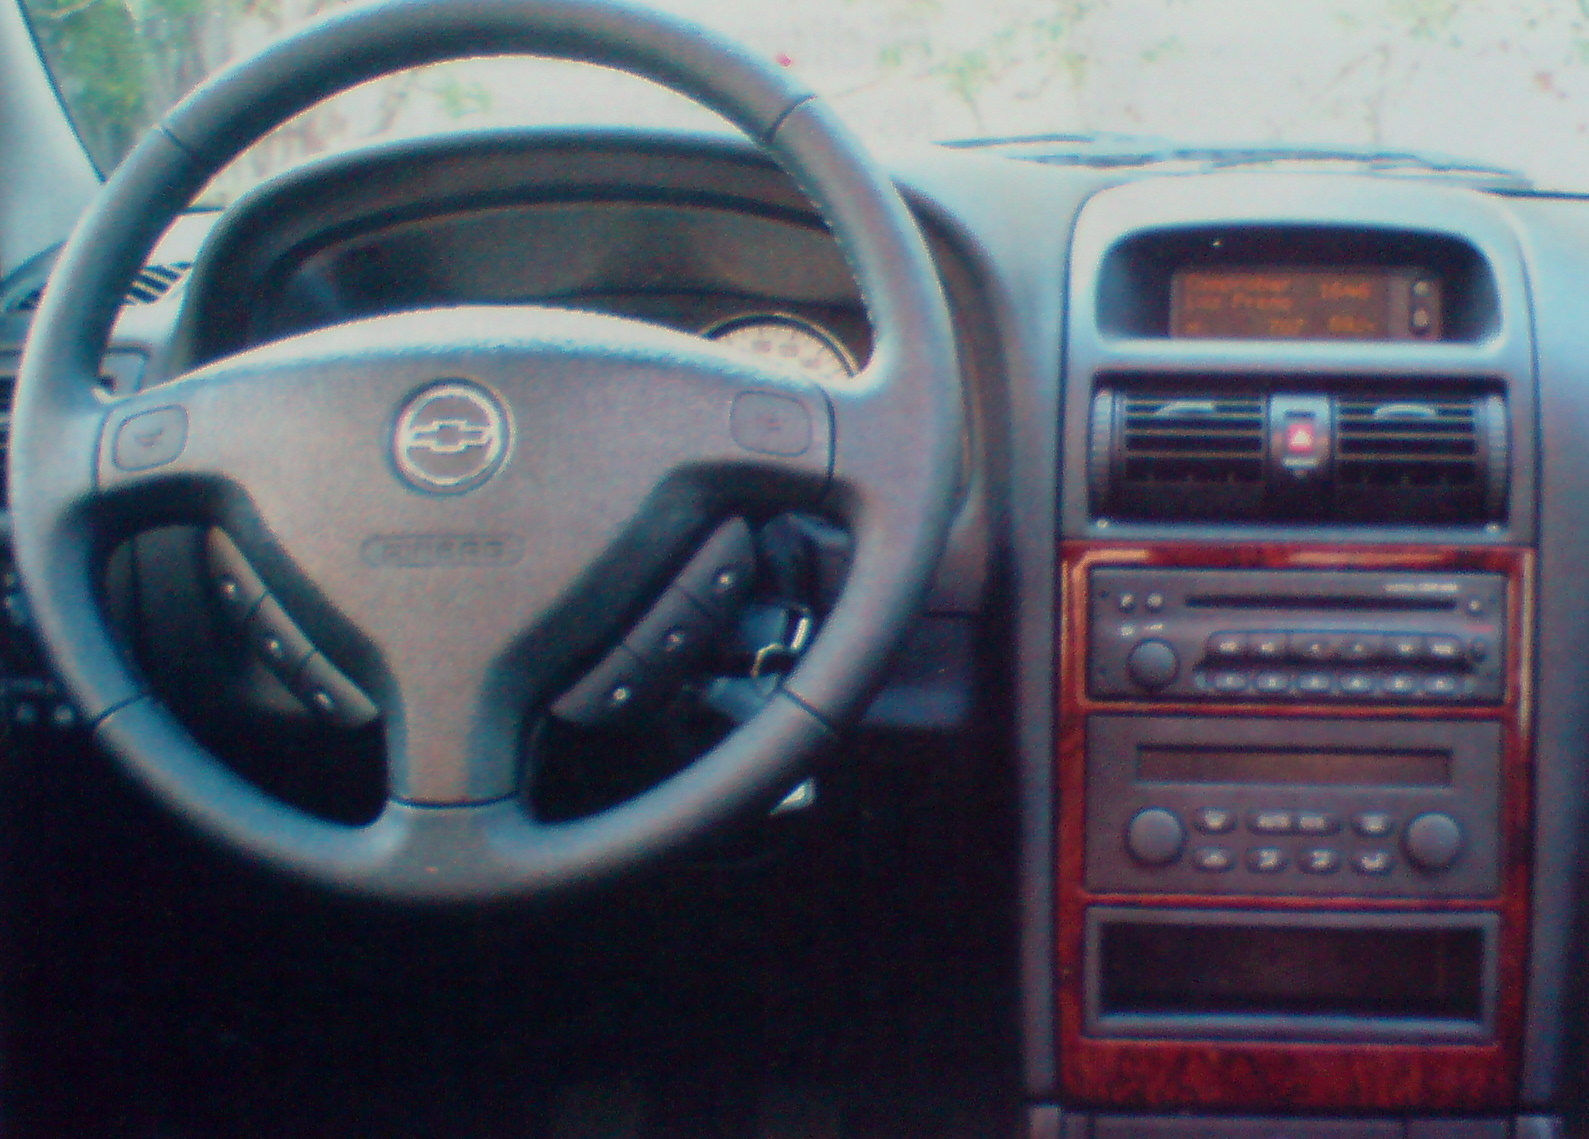 Chevrolet astra 2002 opiniones - Chefy 5 opiniones ...